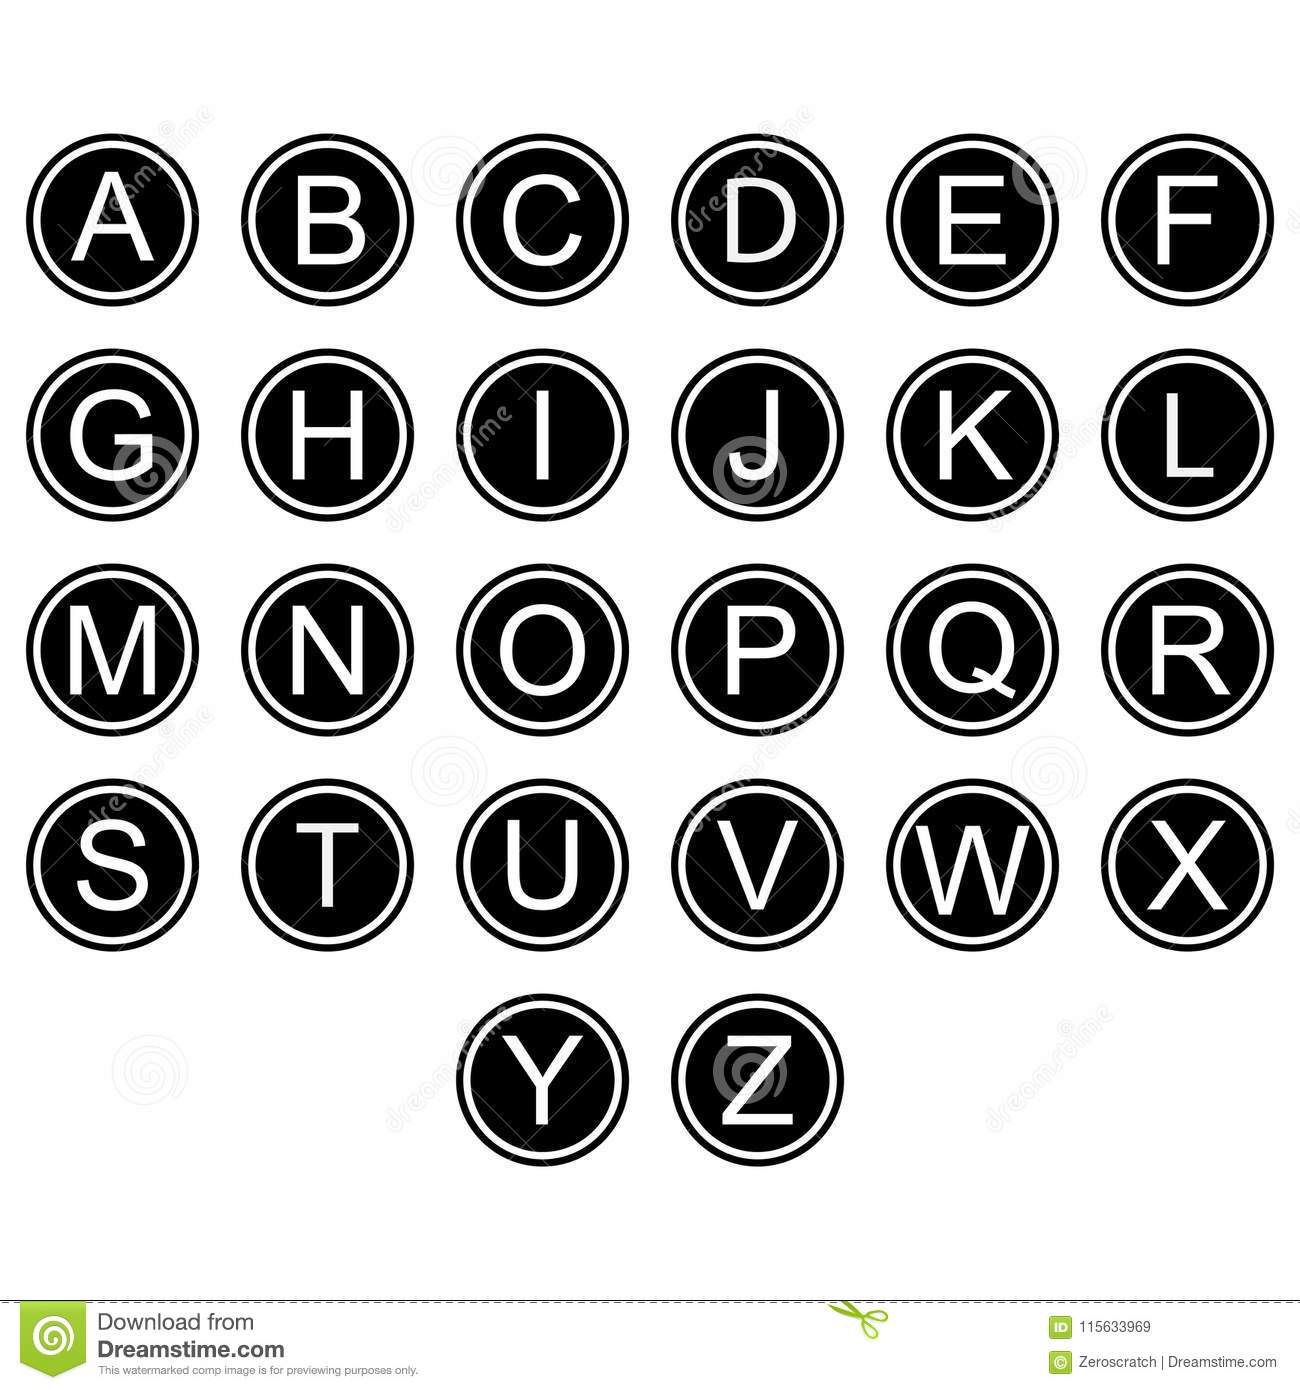 English Alphabet Letters Symbols Icons Signs Simple Black And White